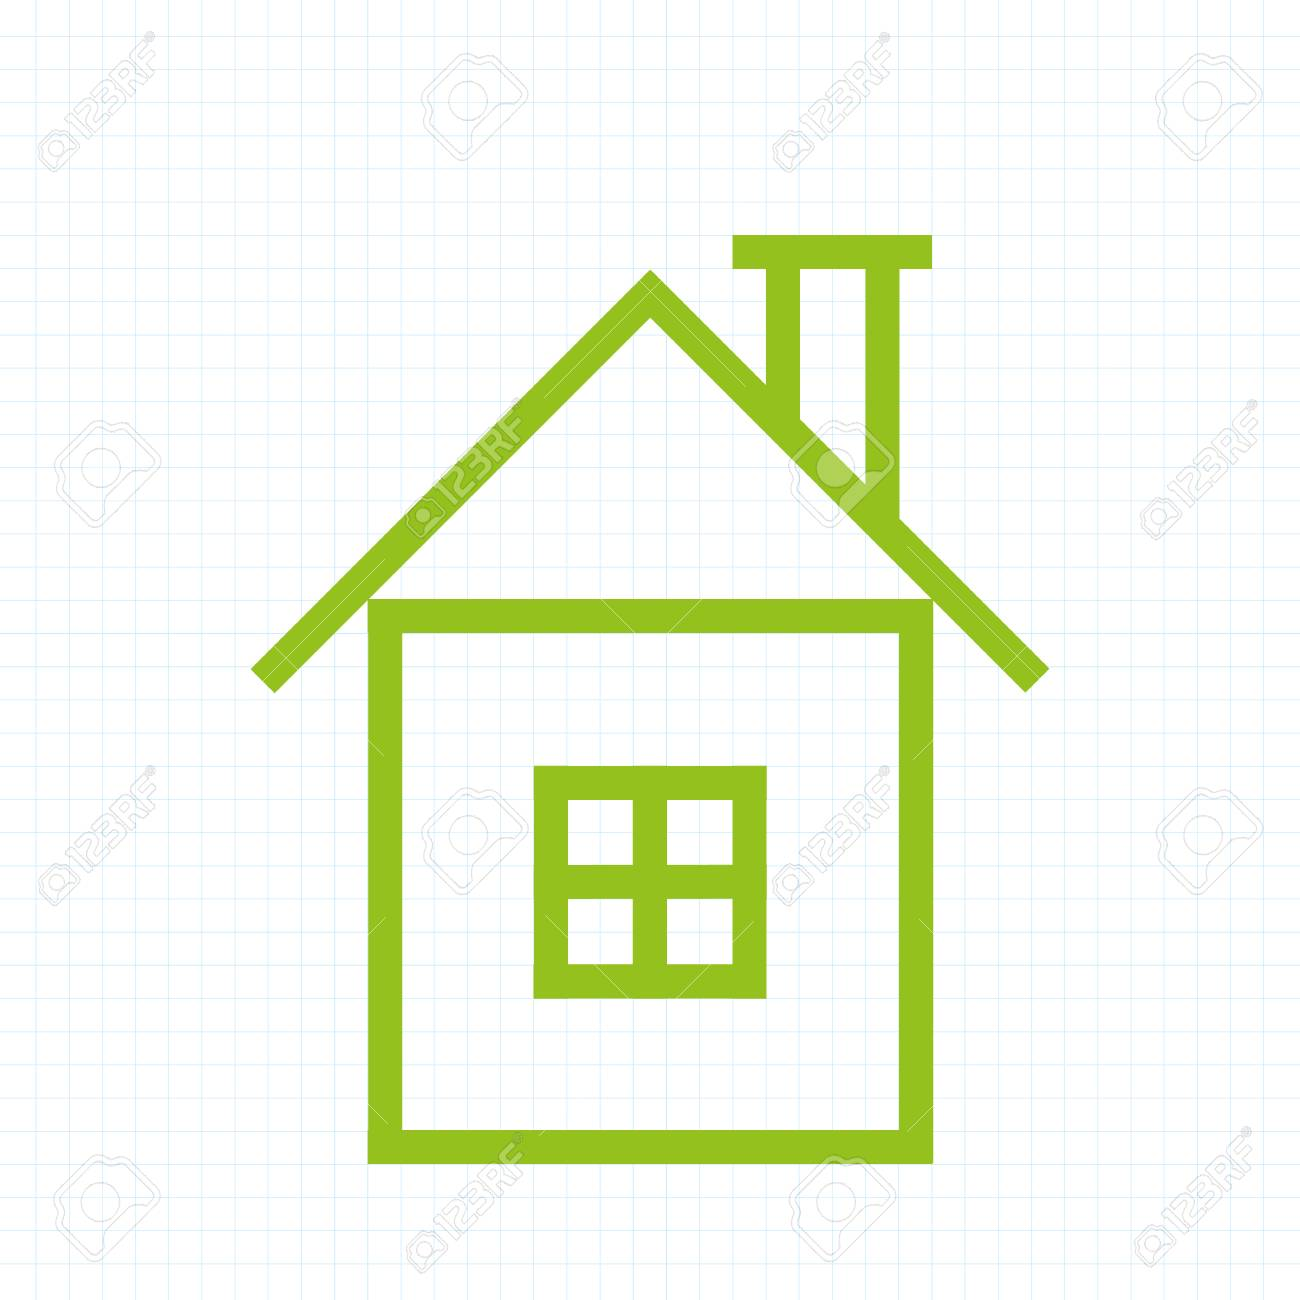 Plan Your House Background Royalty Free Cliparts  Vectors  And    Vector   plan your house background